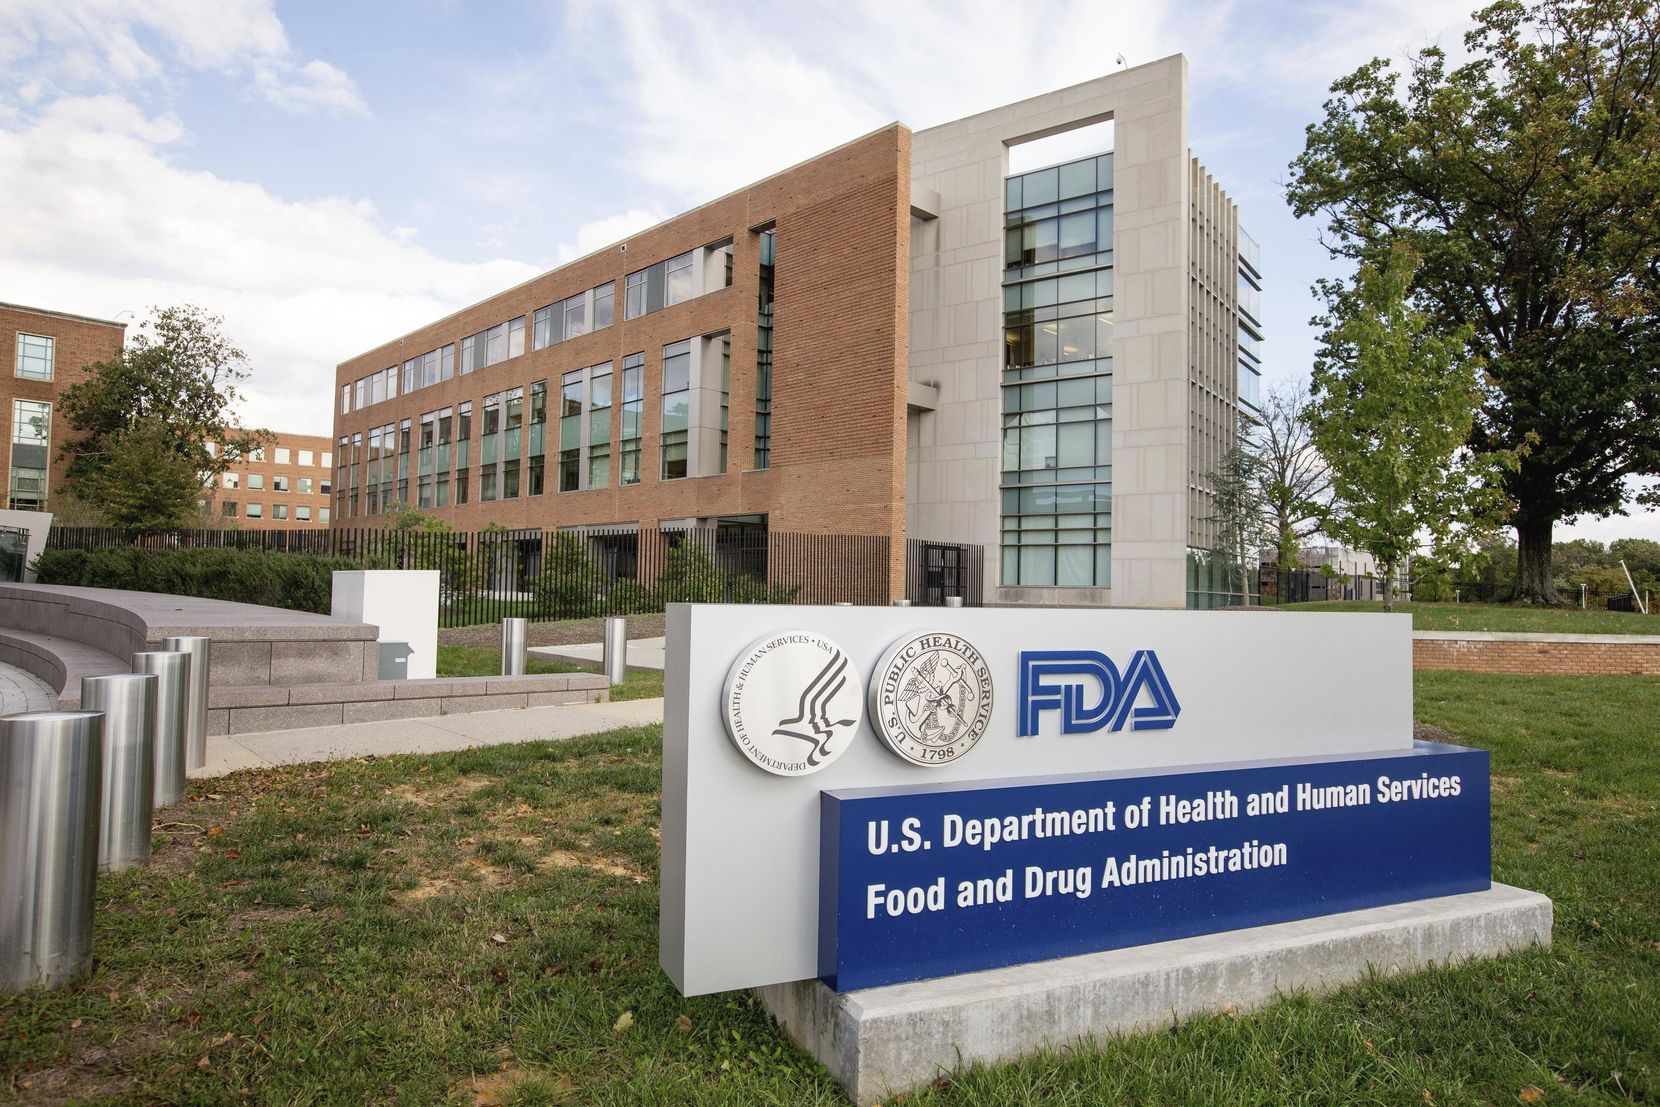 The Food and Drug Administration campus in Silver Spring, Md., was the site of the meeting in June.